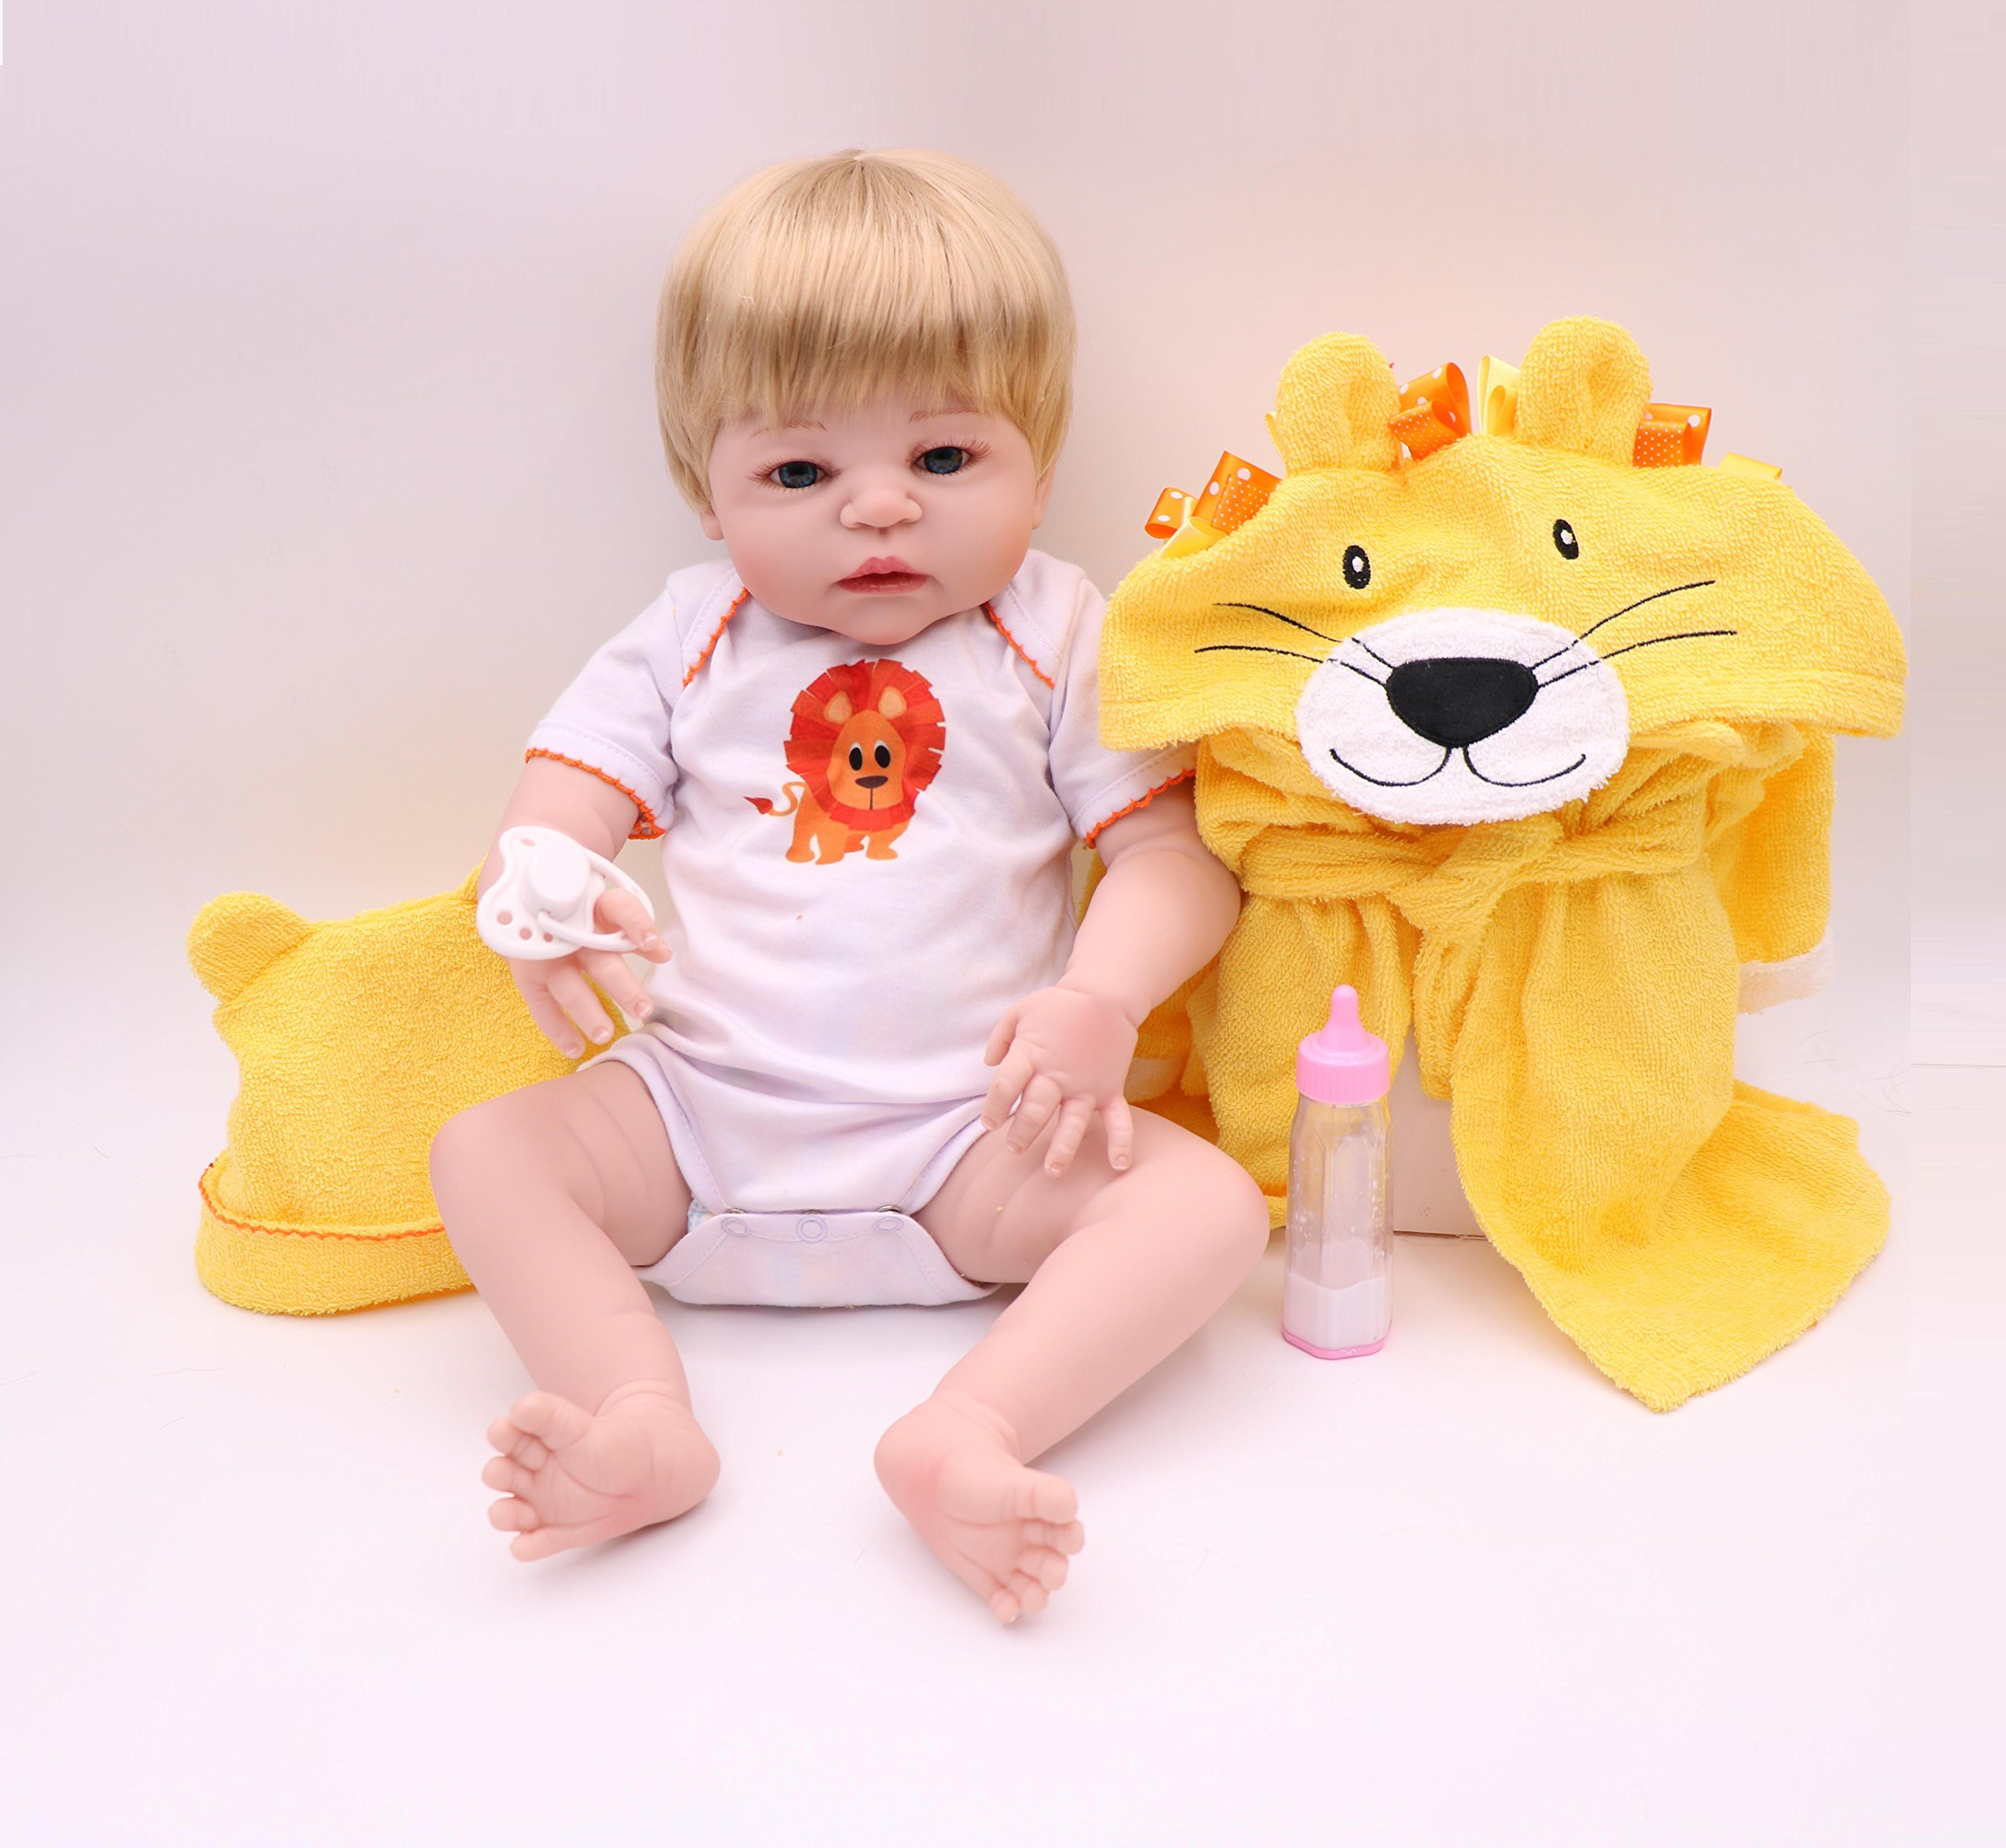 Pursue Baby Washable Full Body Lifelike Newborn Baby Girl Doll with Blonde Hair Patricia, 22 Inch Fully Poseable Real Life Baby Doll